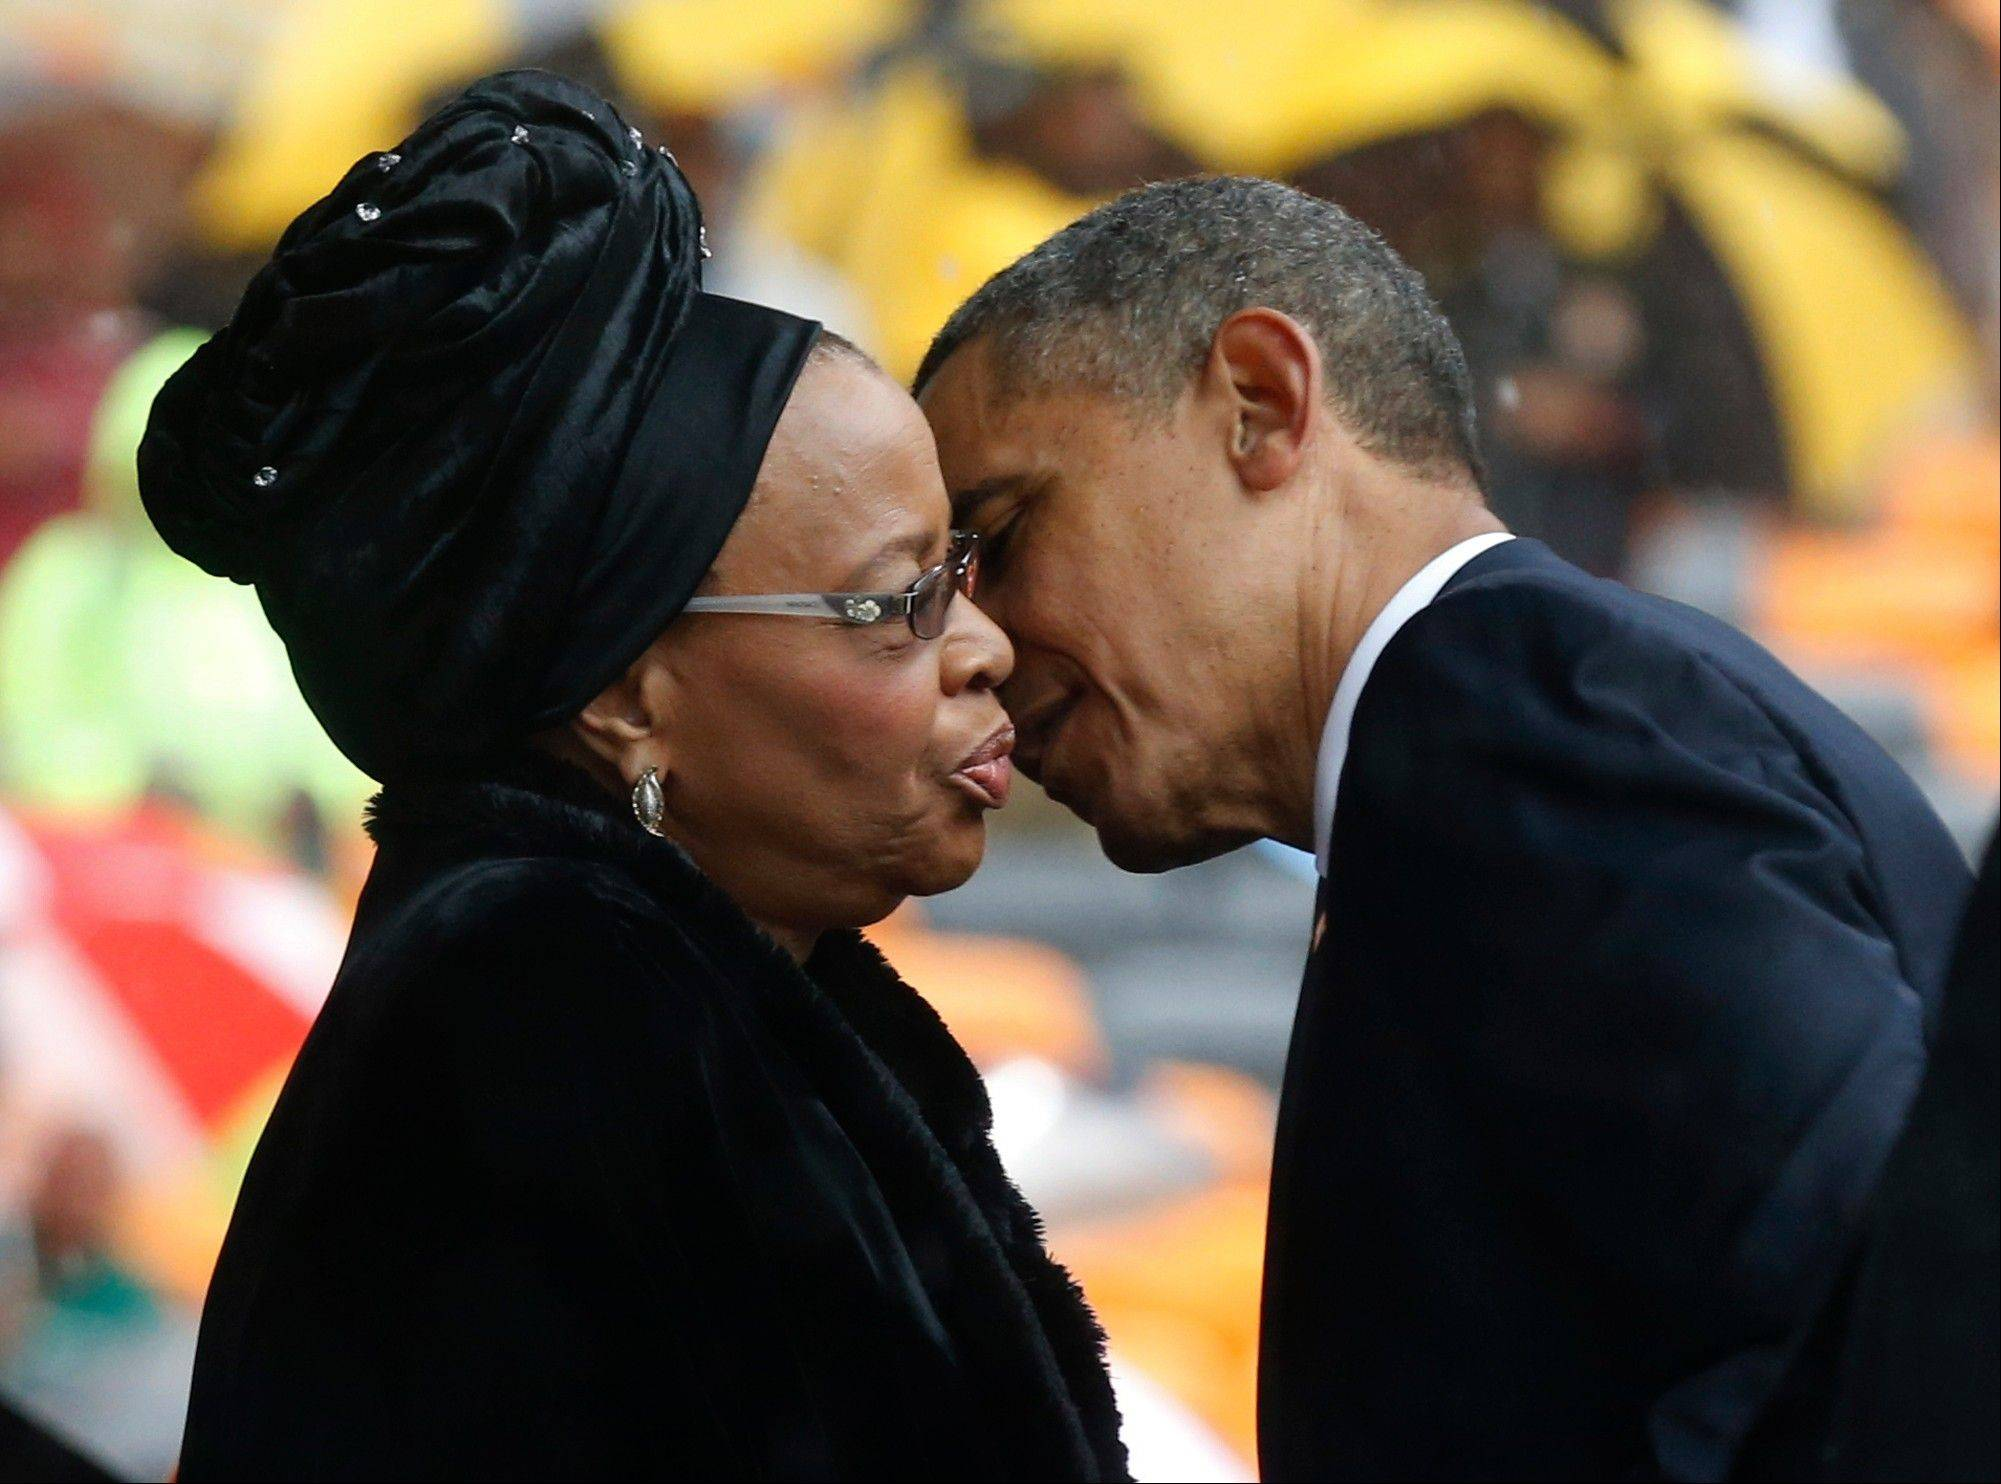 President Barack Obama kisses Nelson Mandela's widow Graca Machel during the memorial service for former South African President Nelson Mandela at the FNB Stadium in Soweto near Johannesburg, Tuesday, Dec. 10, 2013.